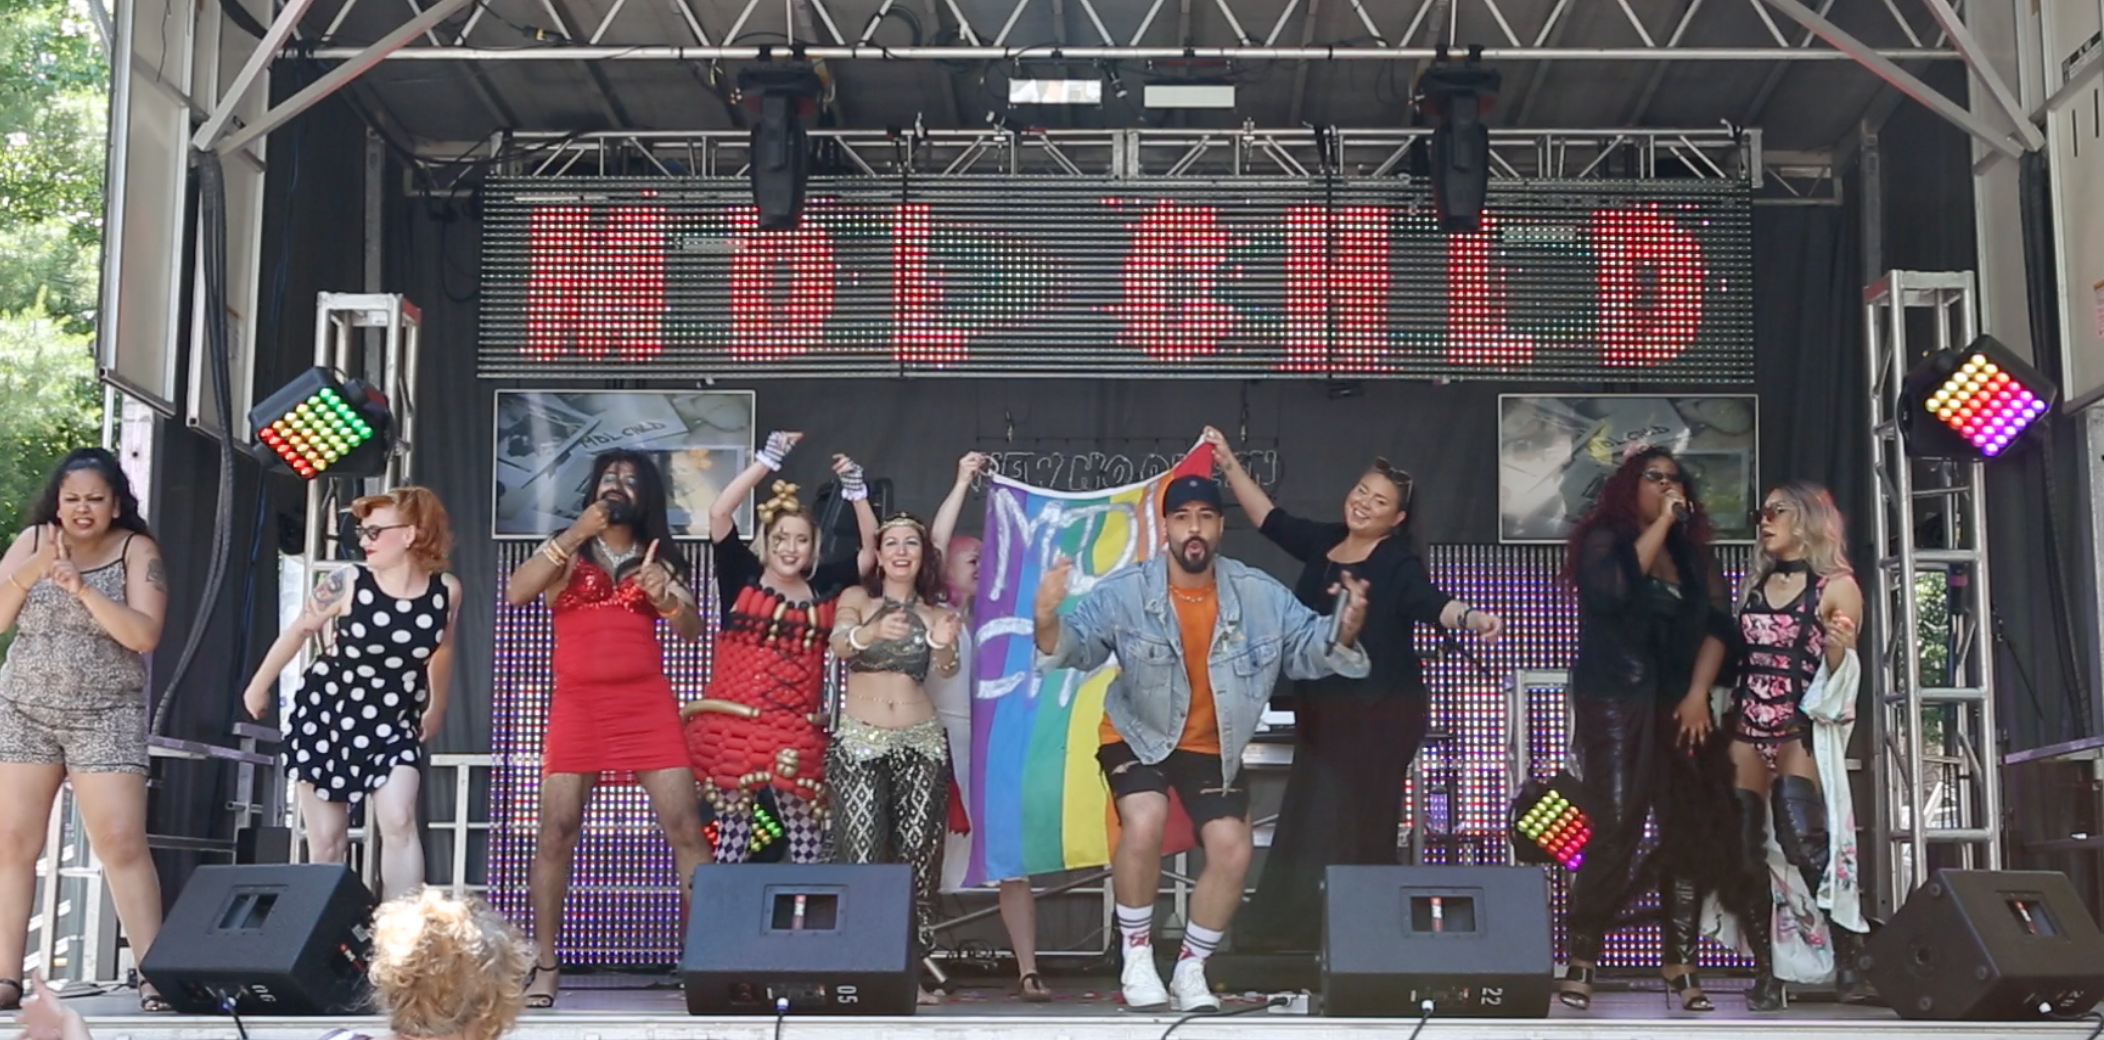 Toronto Pride 2019  Left to Right: Gaitrie (Deaf, Guyanese, ASL Performer), Knox (Burlesque performer [Visual performance piece for Deaf community]), Jaideep (Gay, Deaf, Indian, ASL Performer), Bella Magic (Circus Performer [Visual]), Stacie Noel (Circus Performer [Visual]), MDL CHLD (Christopher Corsini, Gay performer/ASL Interpreter), Ashley Bomberry (Queer, Indigenous, Activist/Speaker/Creator), Amanda Mae (Bajan, Female Vocalist), Vachina Dynasty (Filipino/Chinese, Queer Drag Queen)  Out Of Frame: Rogue Benjamin (Queer, Indigenous, ASL Interpreter [ground level providing access & supporting the Deaf performers]), 2 BIPOC Queer dancers holding Advocacy signs, 2 lesbian caucasian dancers holding Advocacy signs.